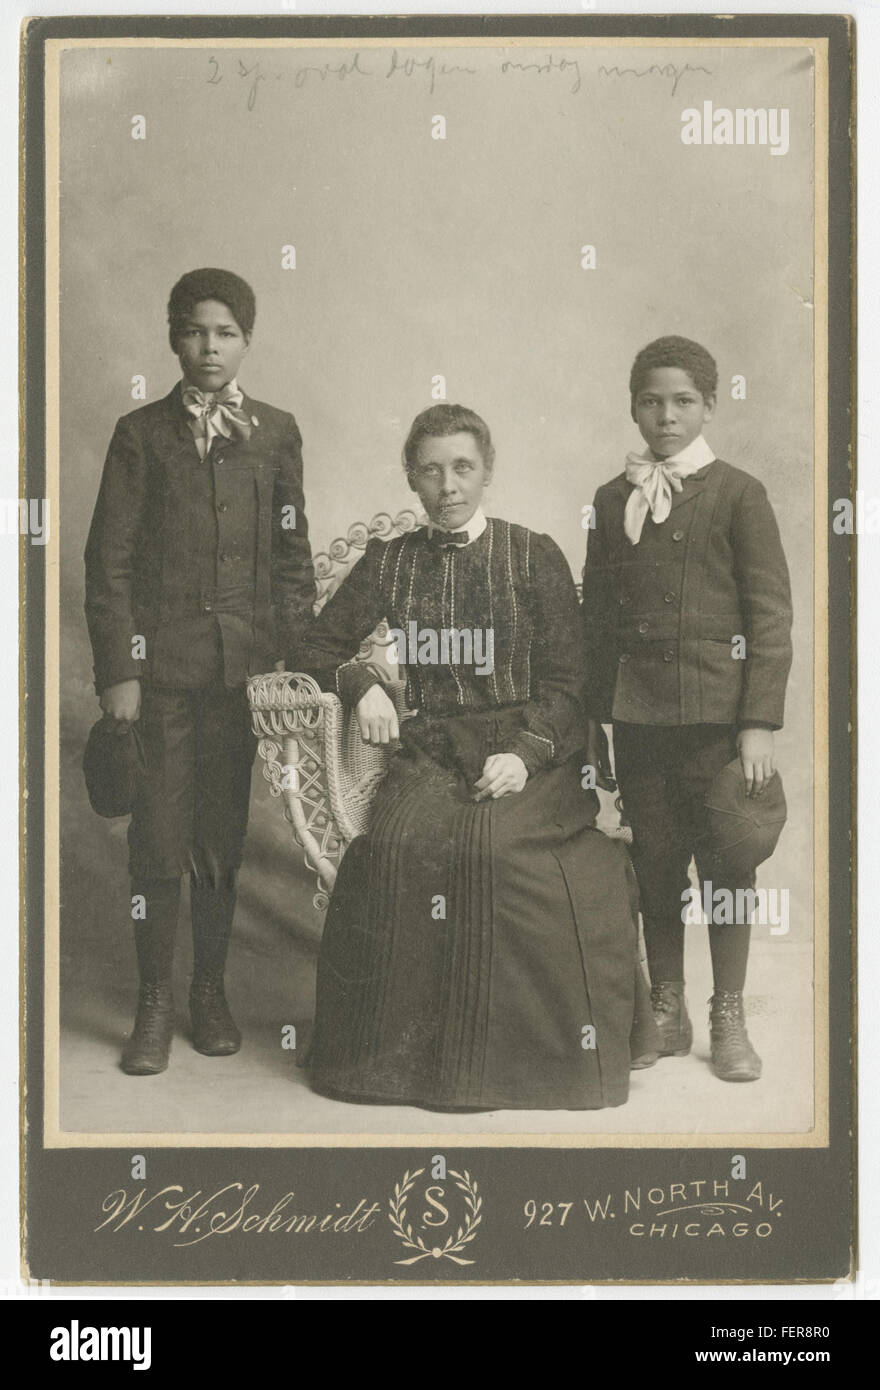 Malla Moe and the brothers Edward and Walter Clarence Malla Moe and the brothers Edward and Walter Clarence - Stock Image